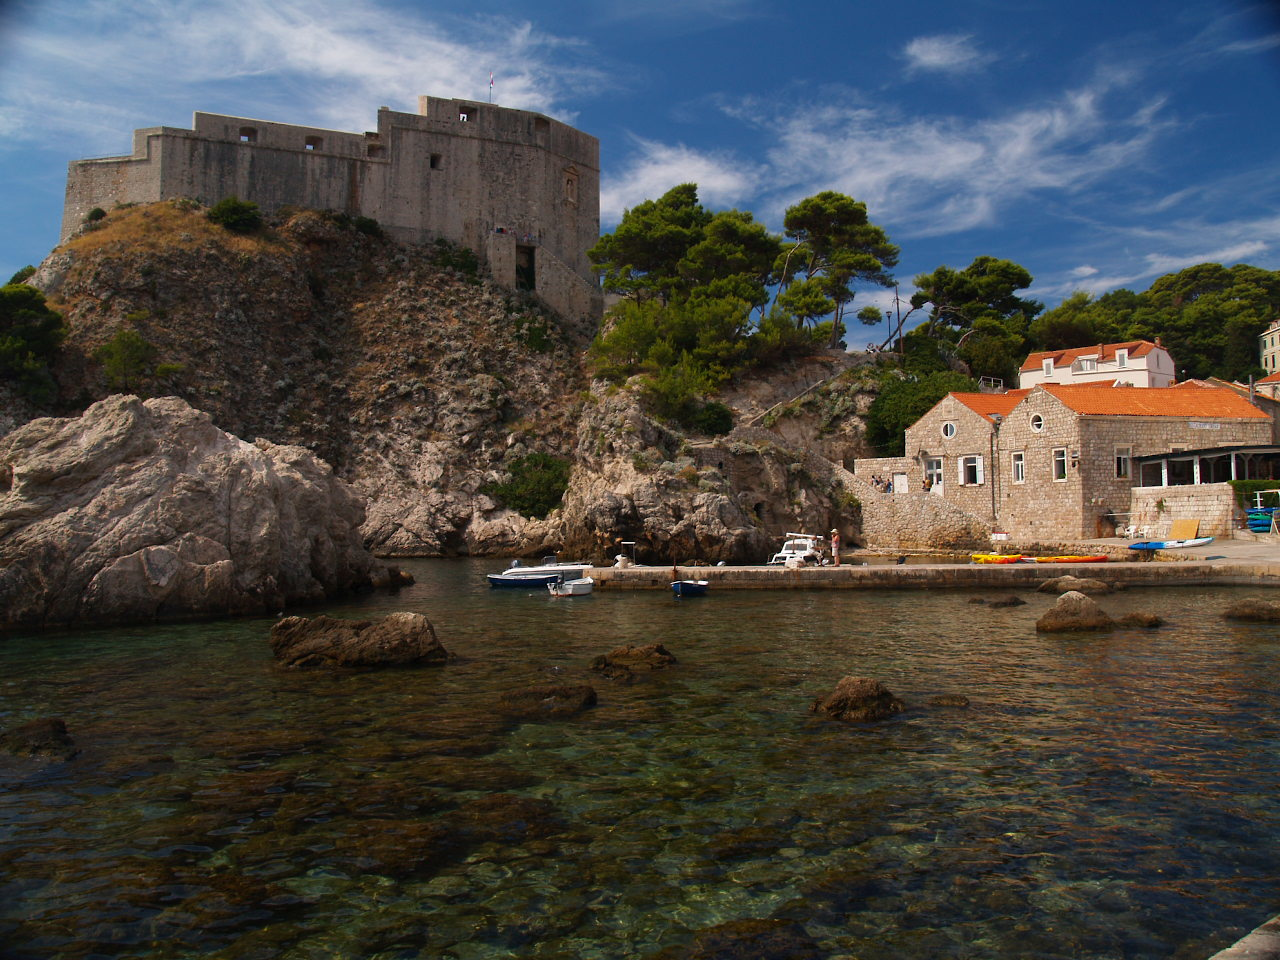 Flight marks the first time Delta will operate nonstop service to Croatia.